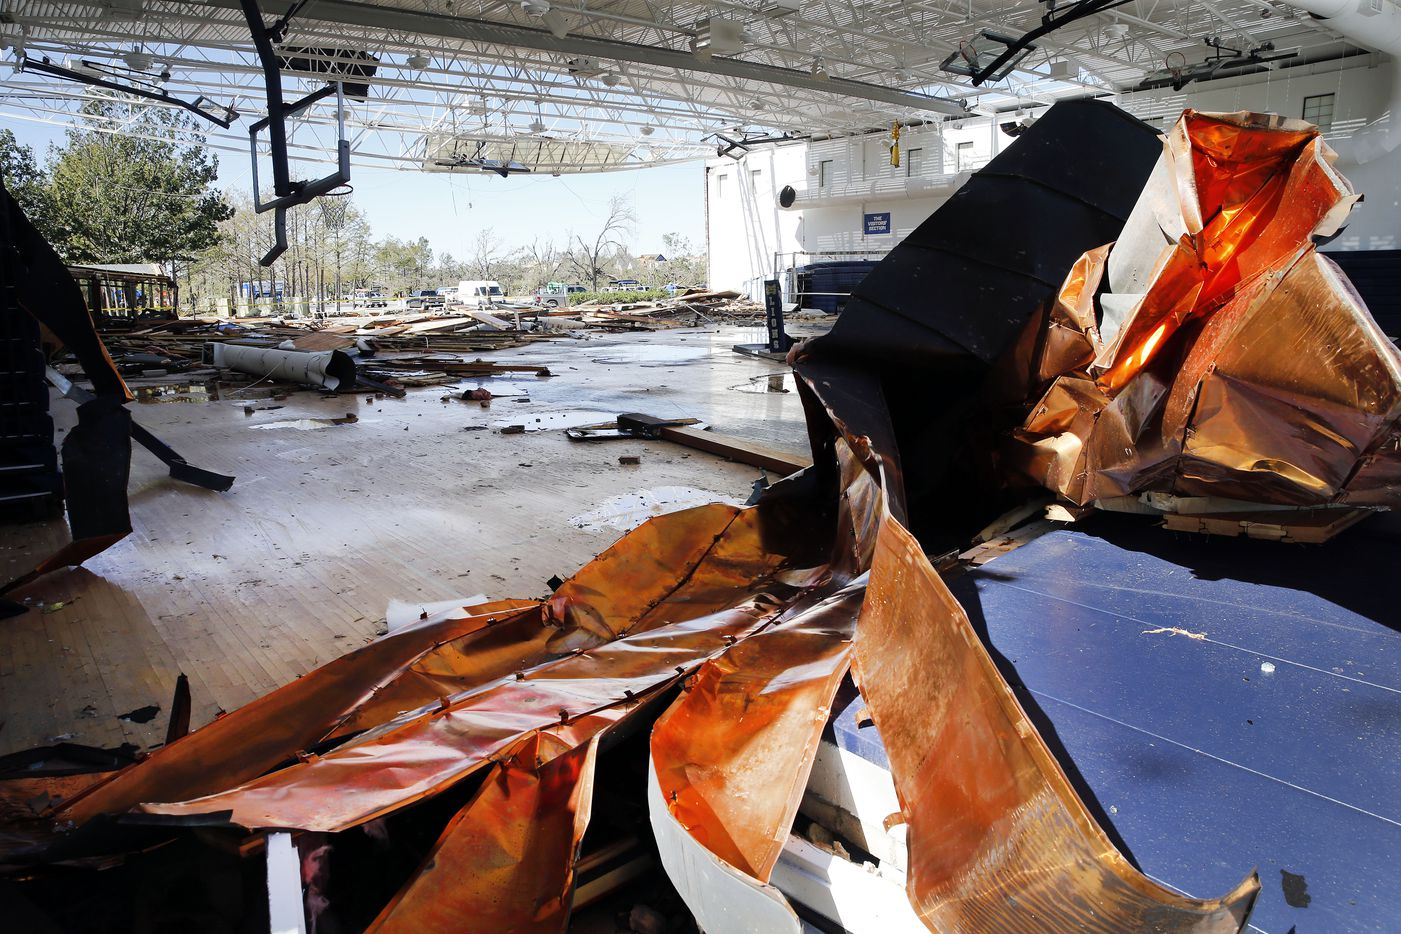 Copper sheeting is crumpled inside the blown open gymnasium at St. Mark's School of Texas following the tornado in Dallas, Monday, October 21, 2019. A tornado tore through the entire neighborhood knocking down trees and ripping roofs from homes. (Tom Fox/The Dallas Morning News)